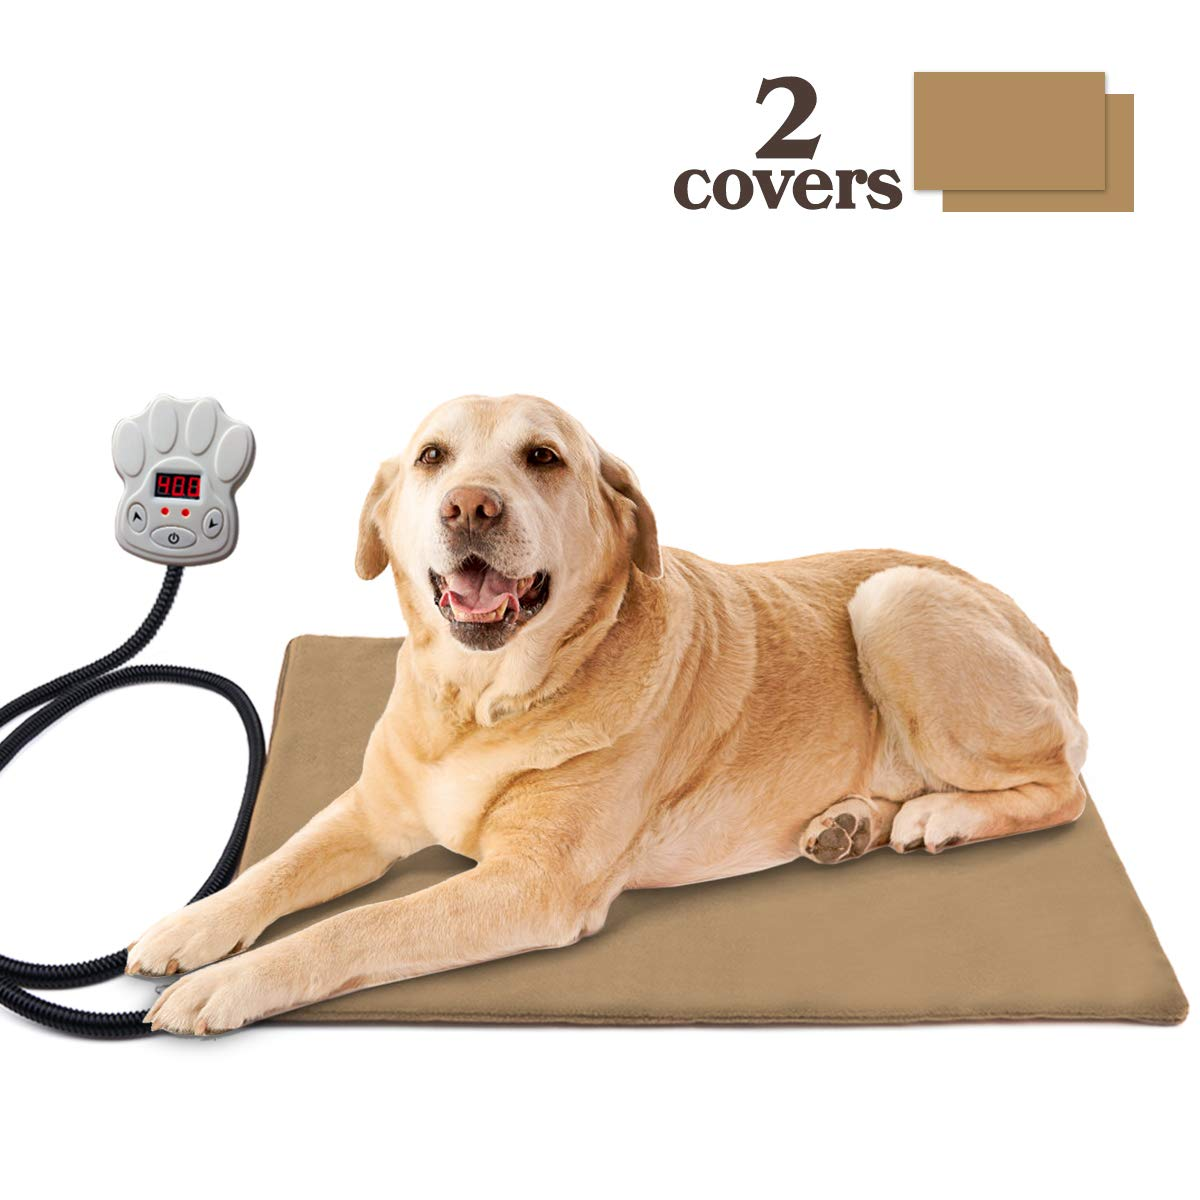 L BACKTURE Pet Heating Pad, Dog Cat Electric Waterproof Heating Pad Indoor Adjustable Warming Mat with Chew Resistant Steel Cord,Overheat Predection,Soft Removable Cover 23.6x15.8'' (L)